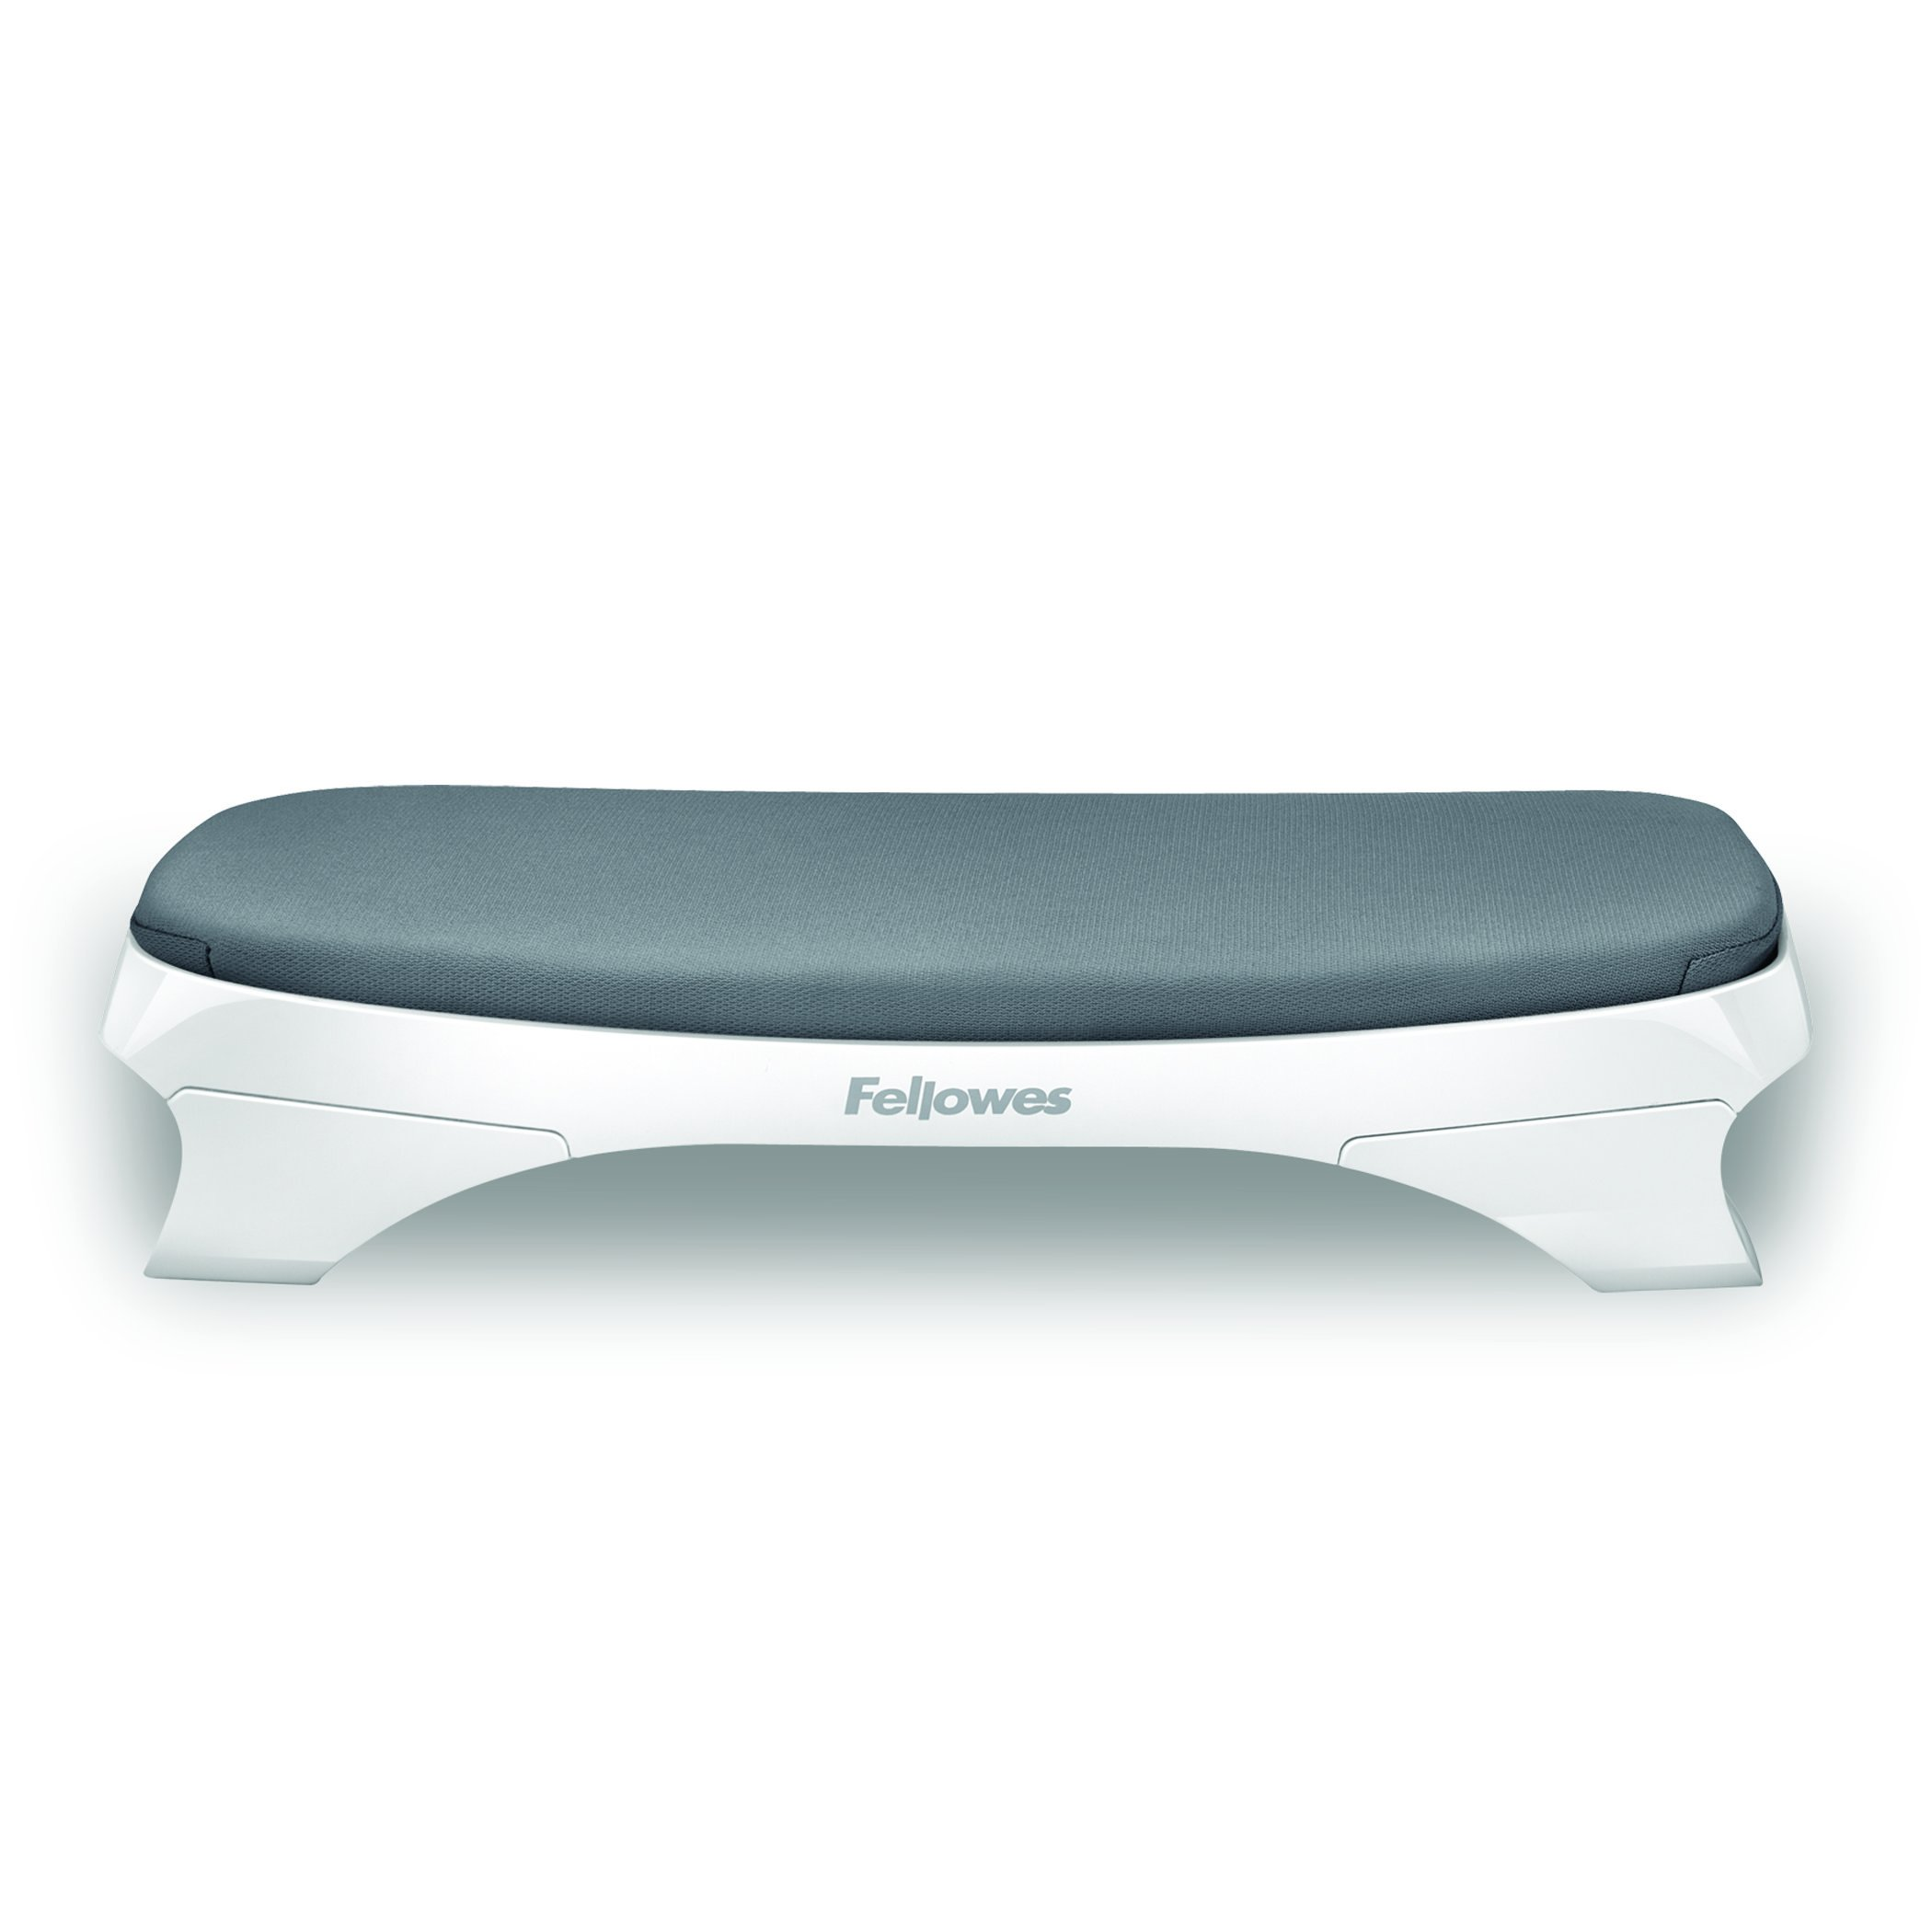 Fellowes I-Spire Series Foot Cushion/Rest, White/Gray (9311701) by Fellowes (Image #3)